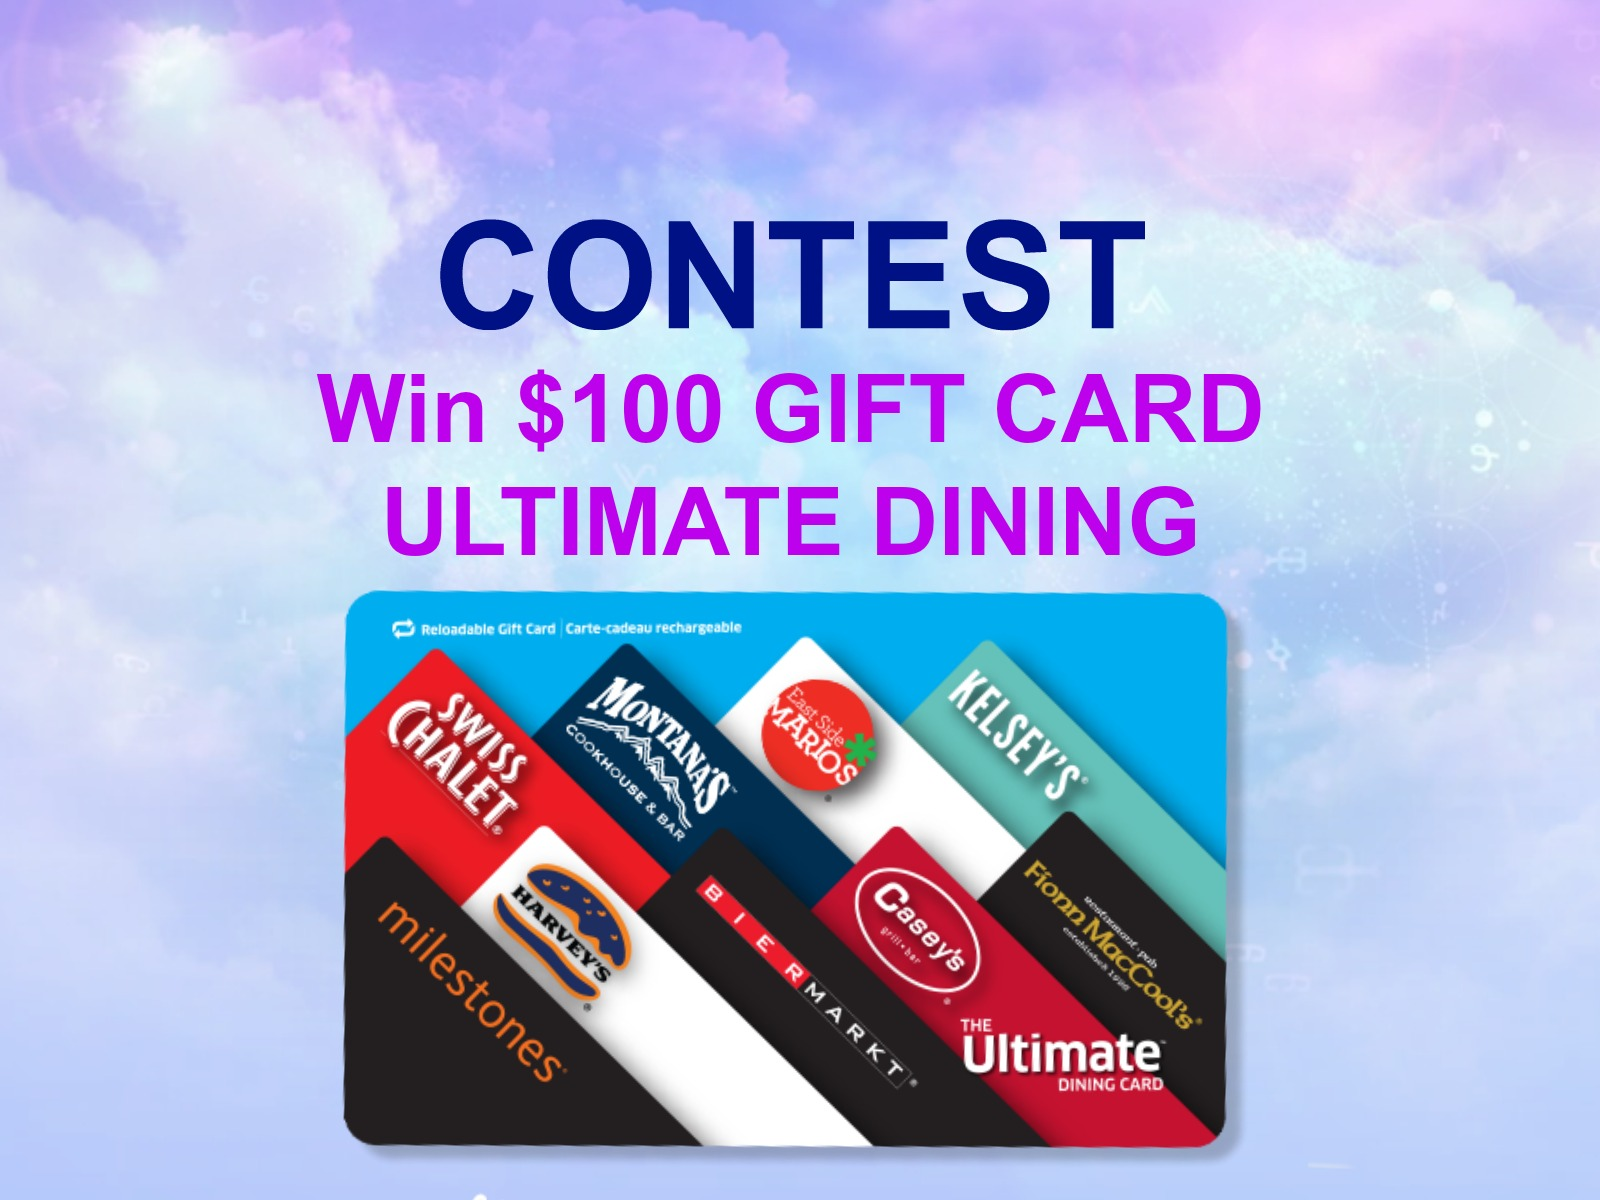 Contest: Win $100 Ultimate Dining Card